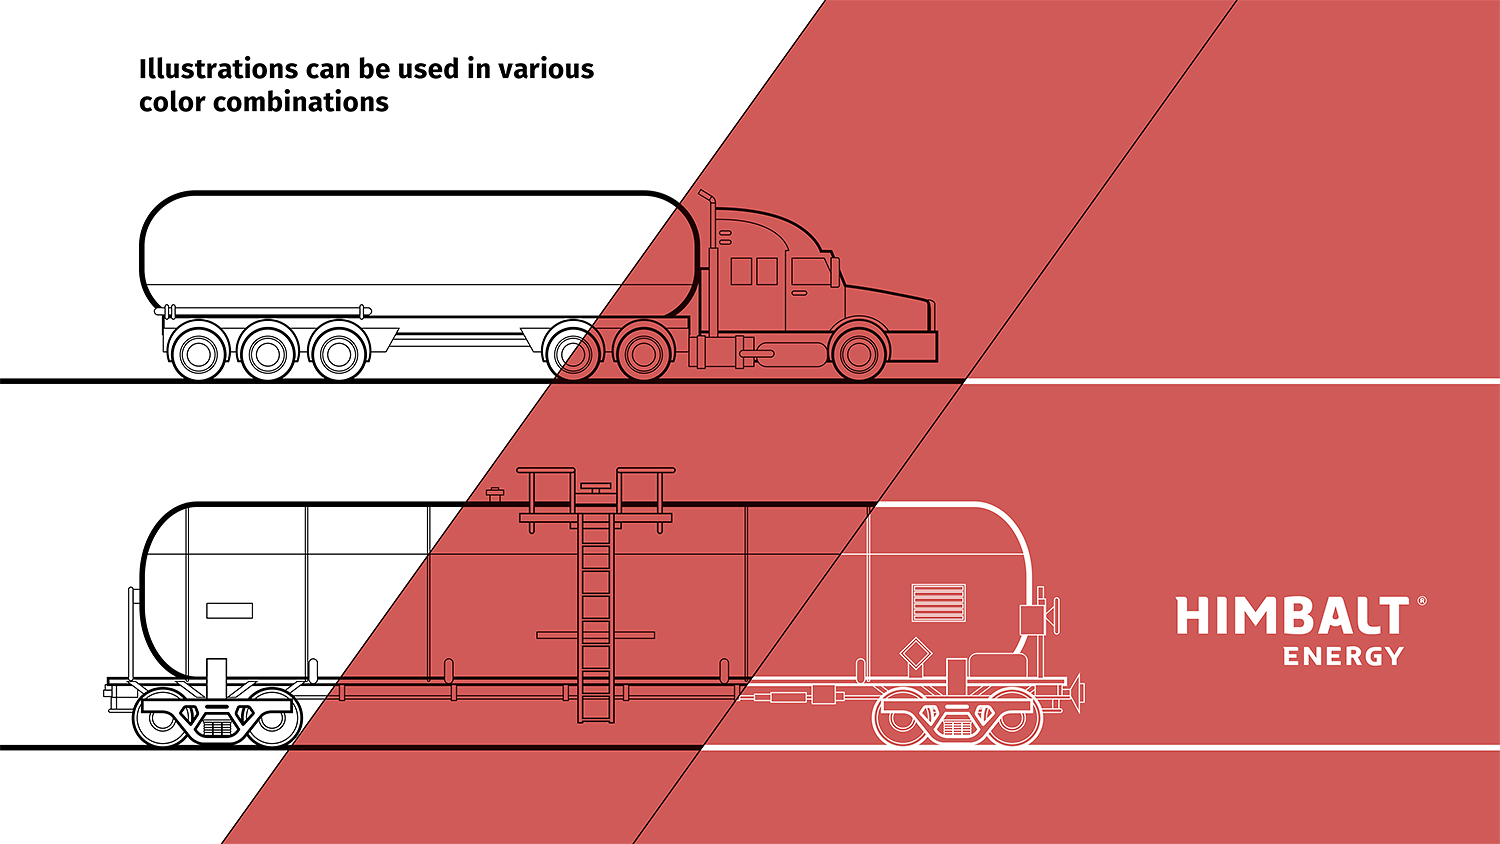 A tank truck, linear illustration. A linear drawing of the Himbalt Energy rail tank car for transportation of petroleum products.